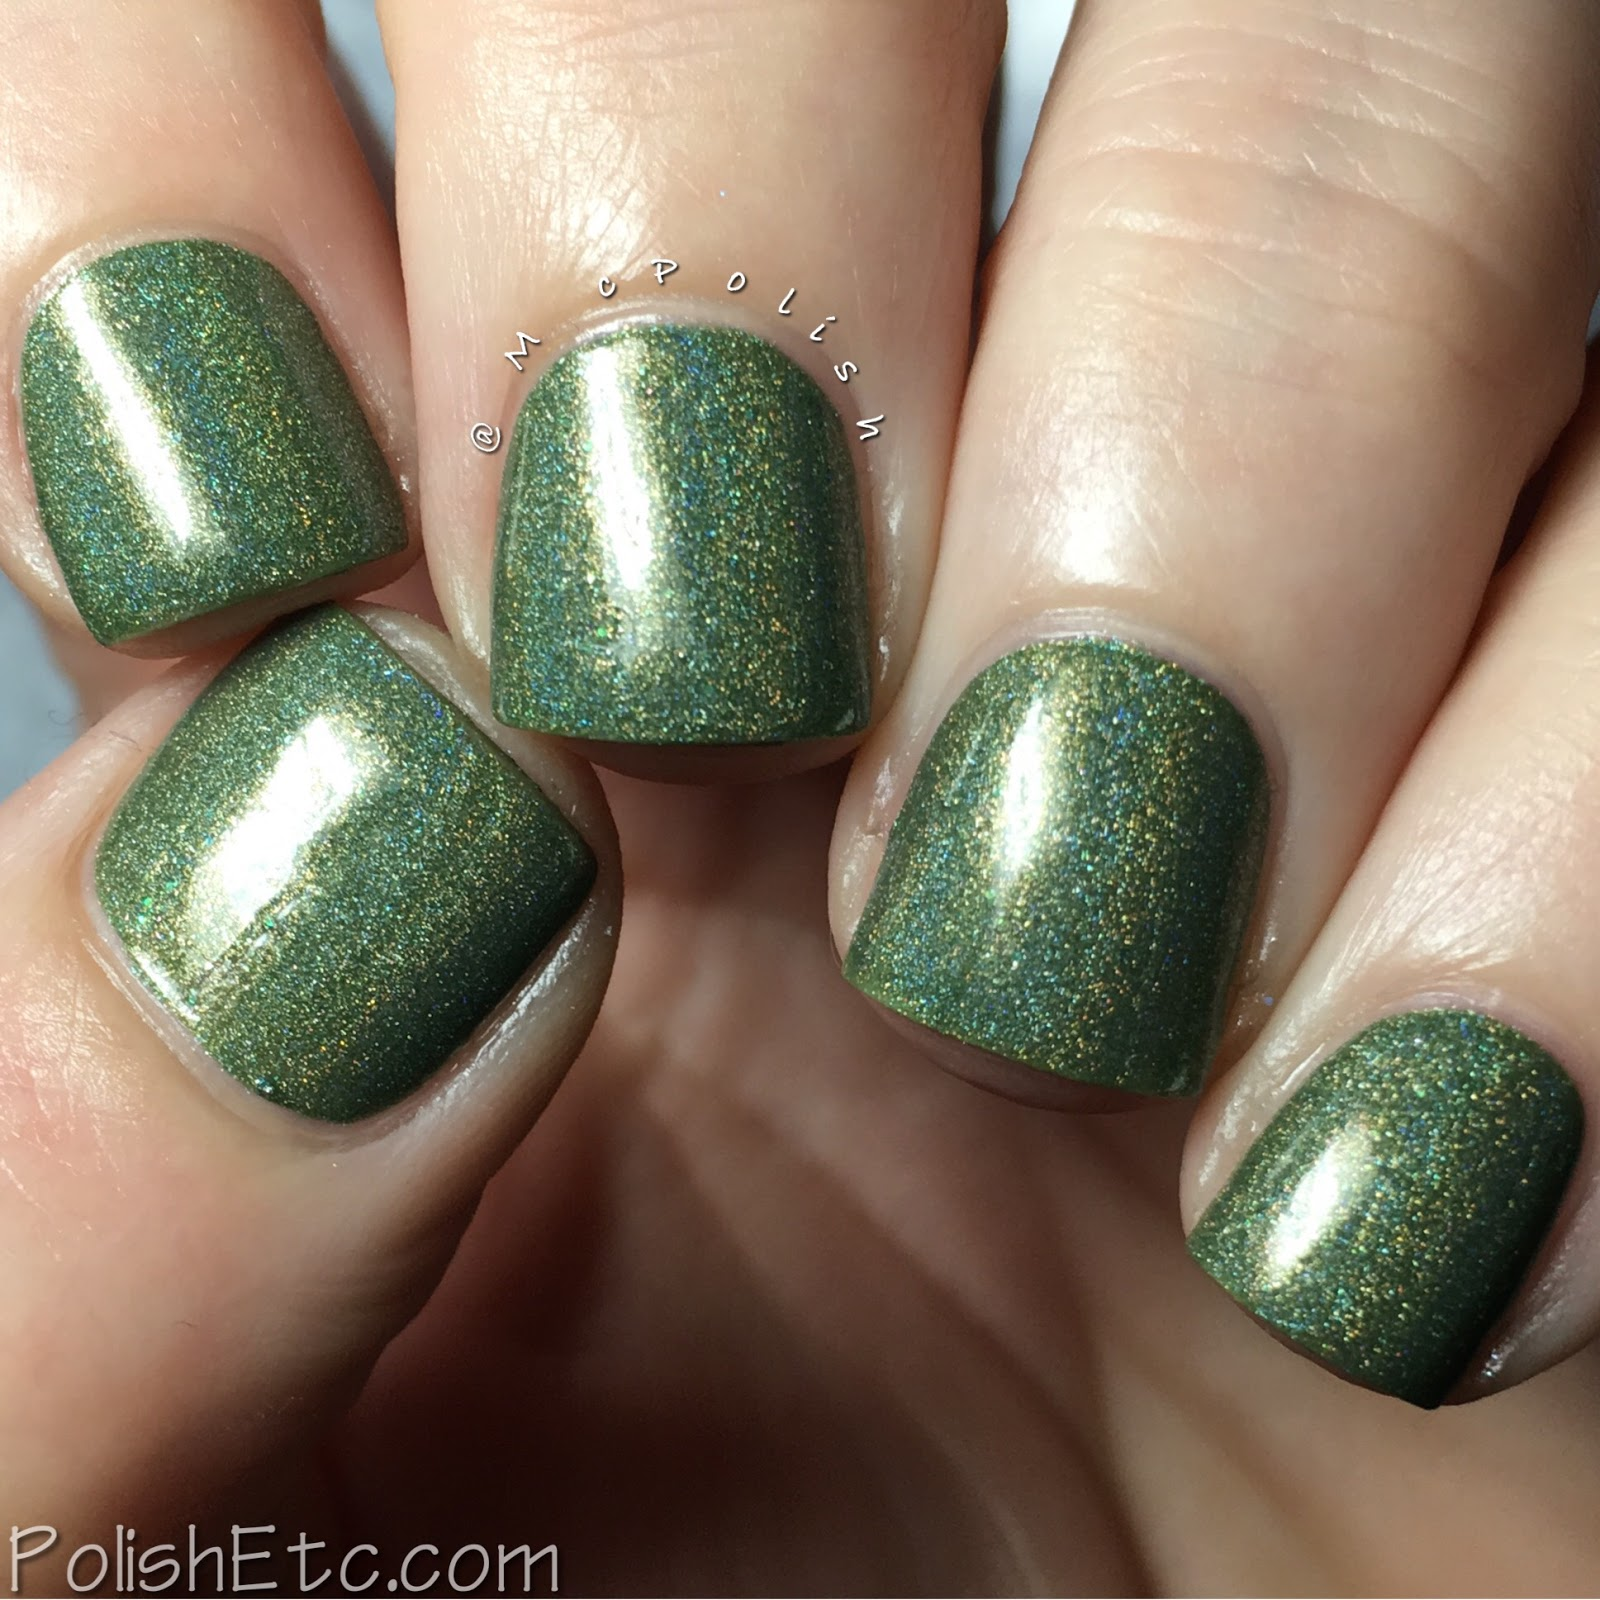 Chirality Polish - Mosura no Uta Collection - McPolish - Cosmos